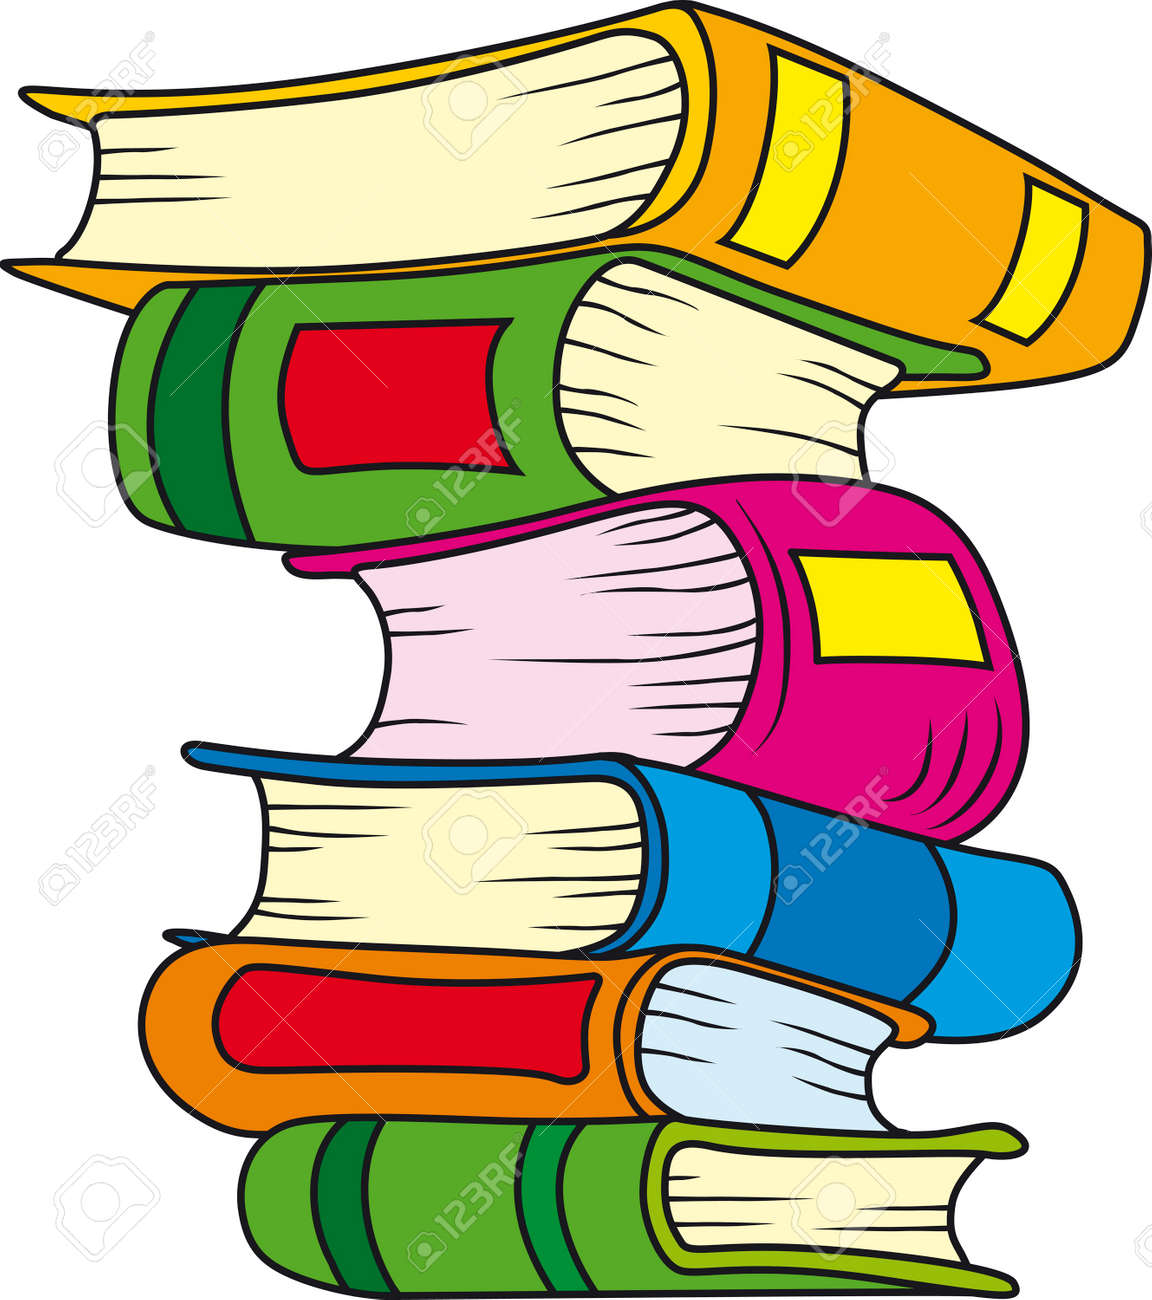 illustration of six books in stack royalty free cliparts vectors rh 123rf com cartoon stack of books black and white cartoon picture of stack of books